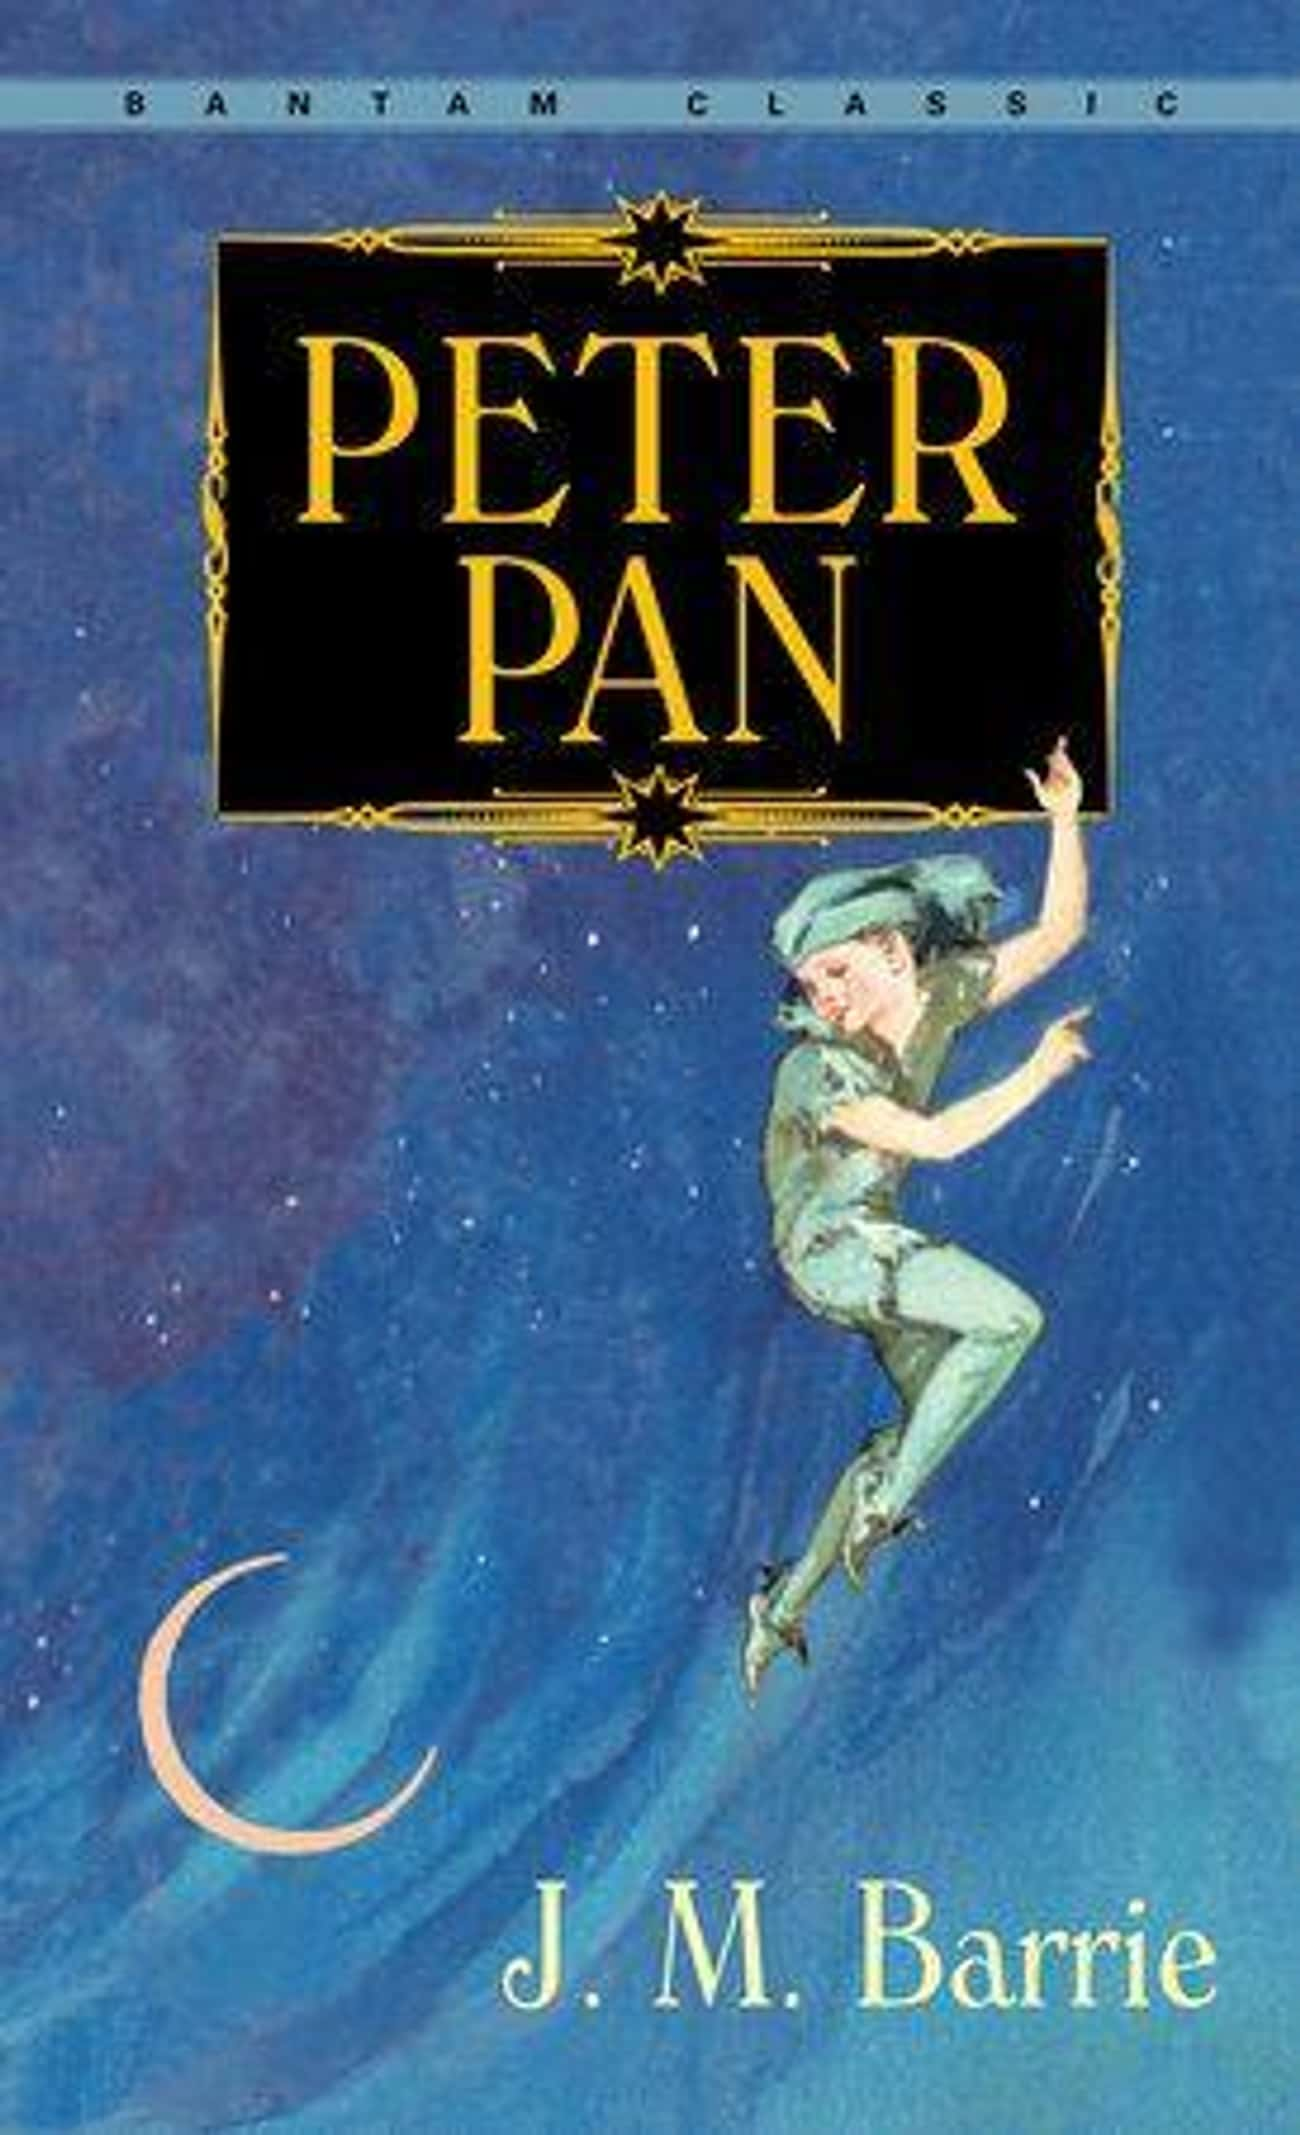 Peter In 'Peter Pan' is listed (or ranked) 3 on the list Movie 'Heroes' Who Were Actually Villains The Whole Time